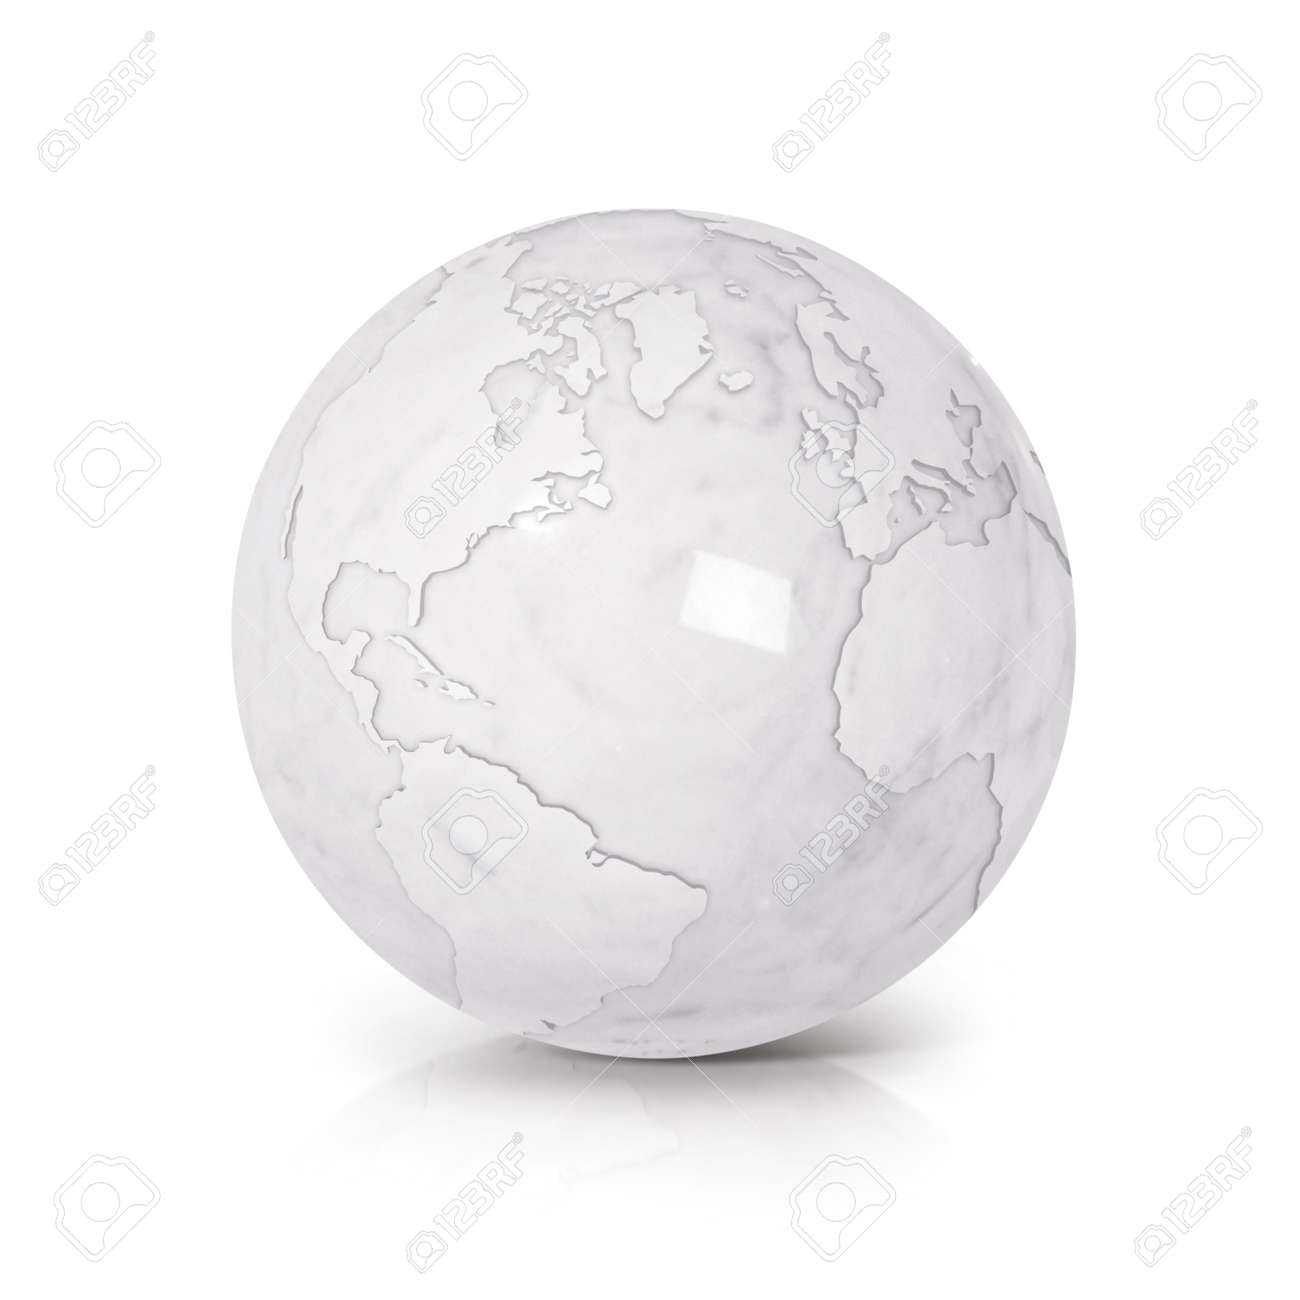 illustration white marble globe 3d illustration north and south america map on white background